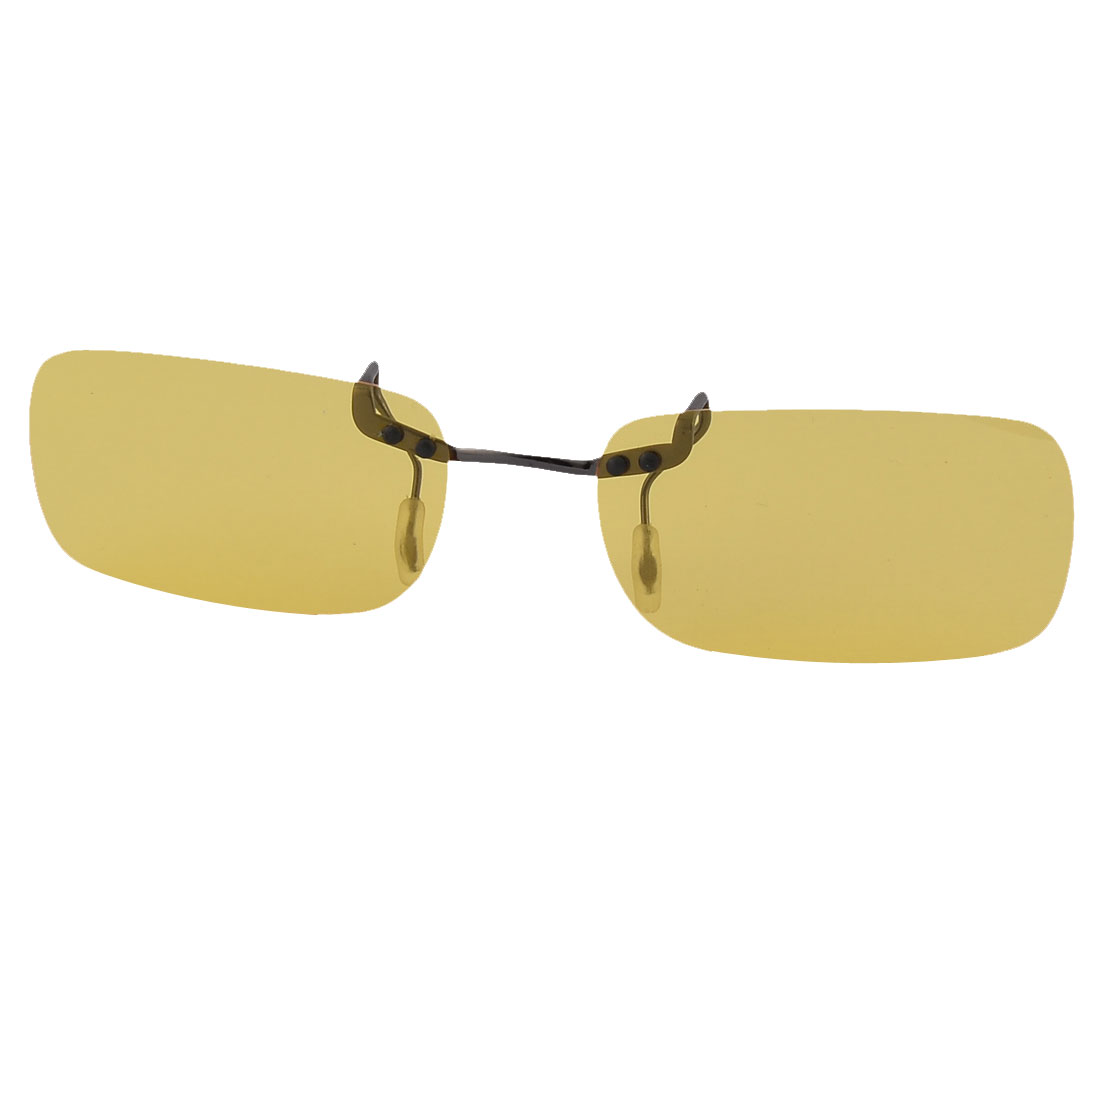 Rimless Lens Clip On Polarized Sunglasses Eyelasses Spectacles Black Clear Yellow